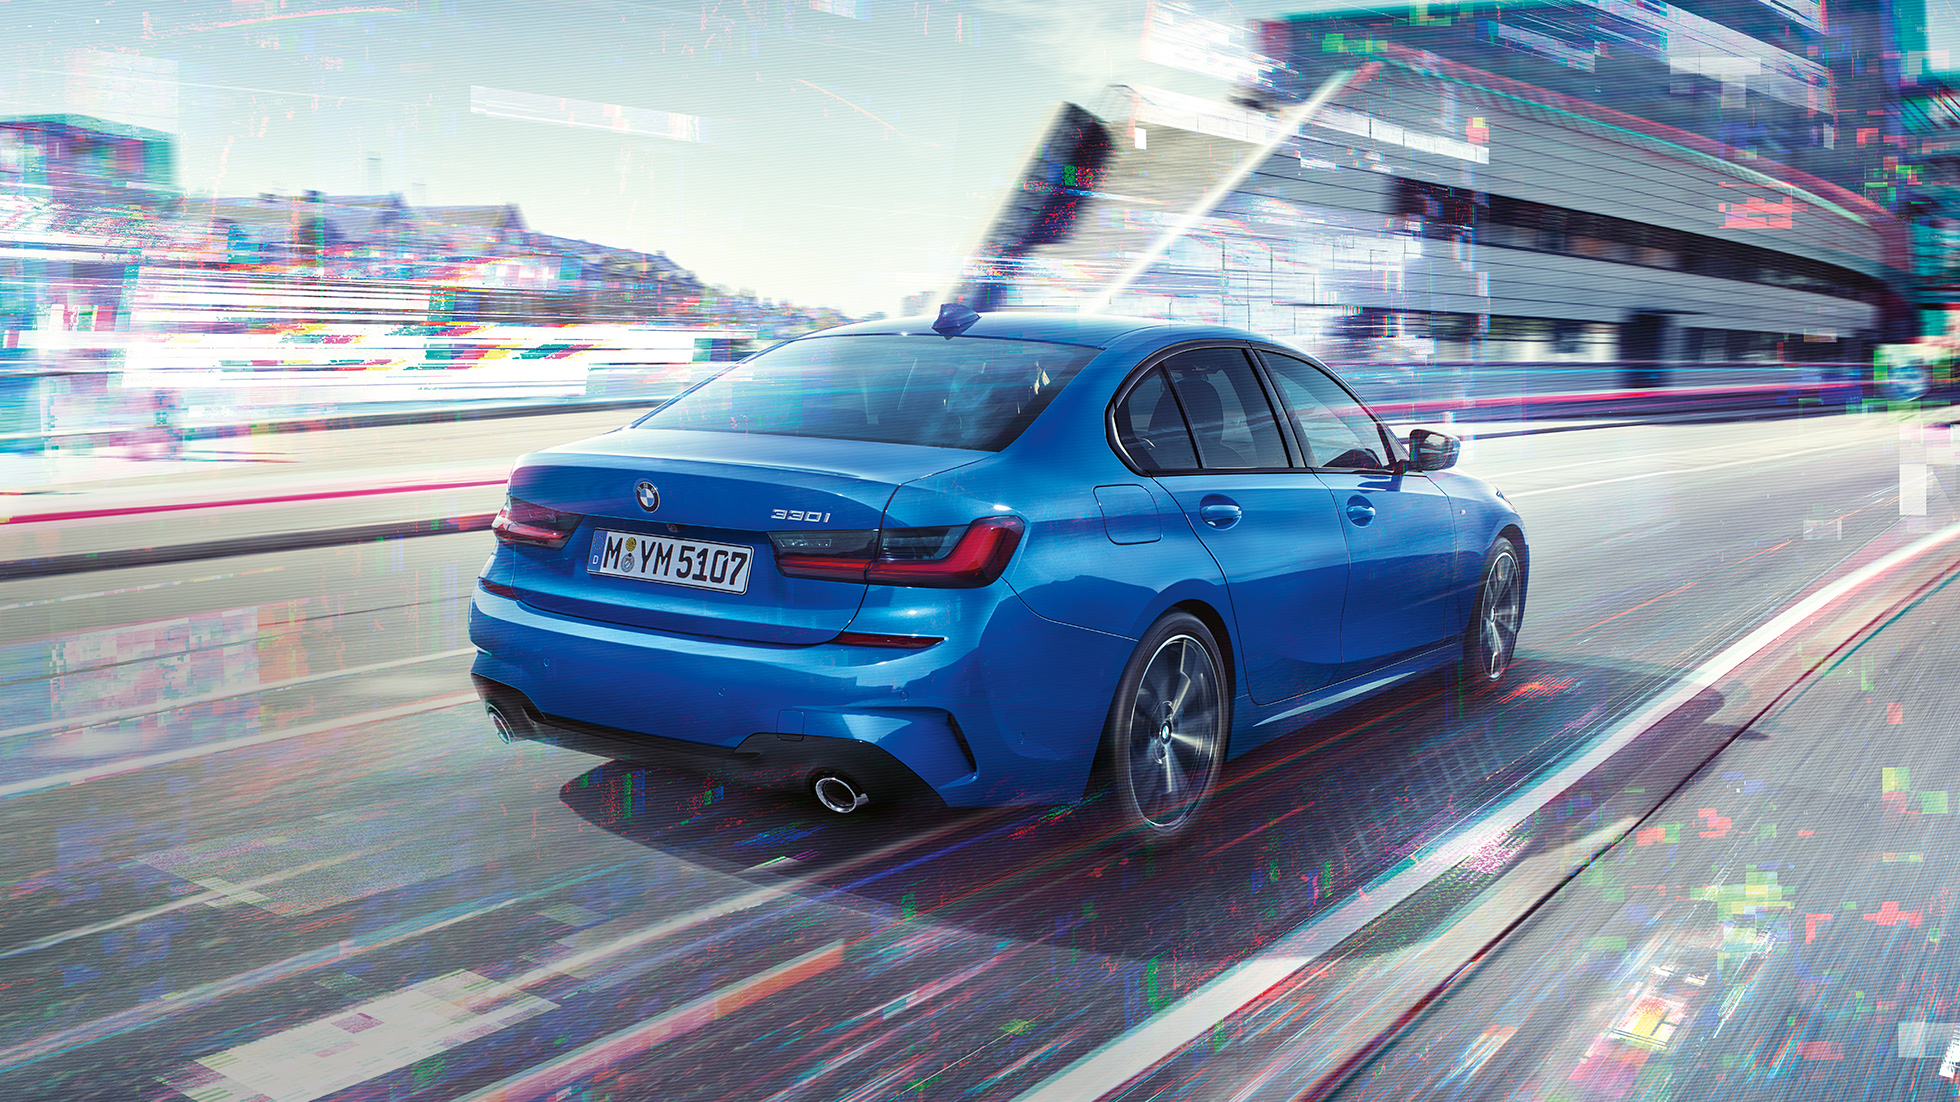 BMW 3 Series Saloon: Discover Highlights | BMW.ie